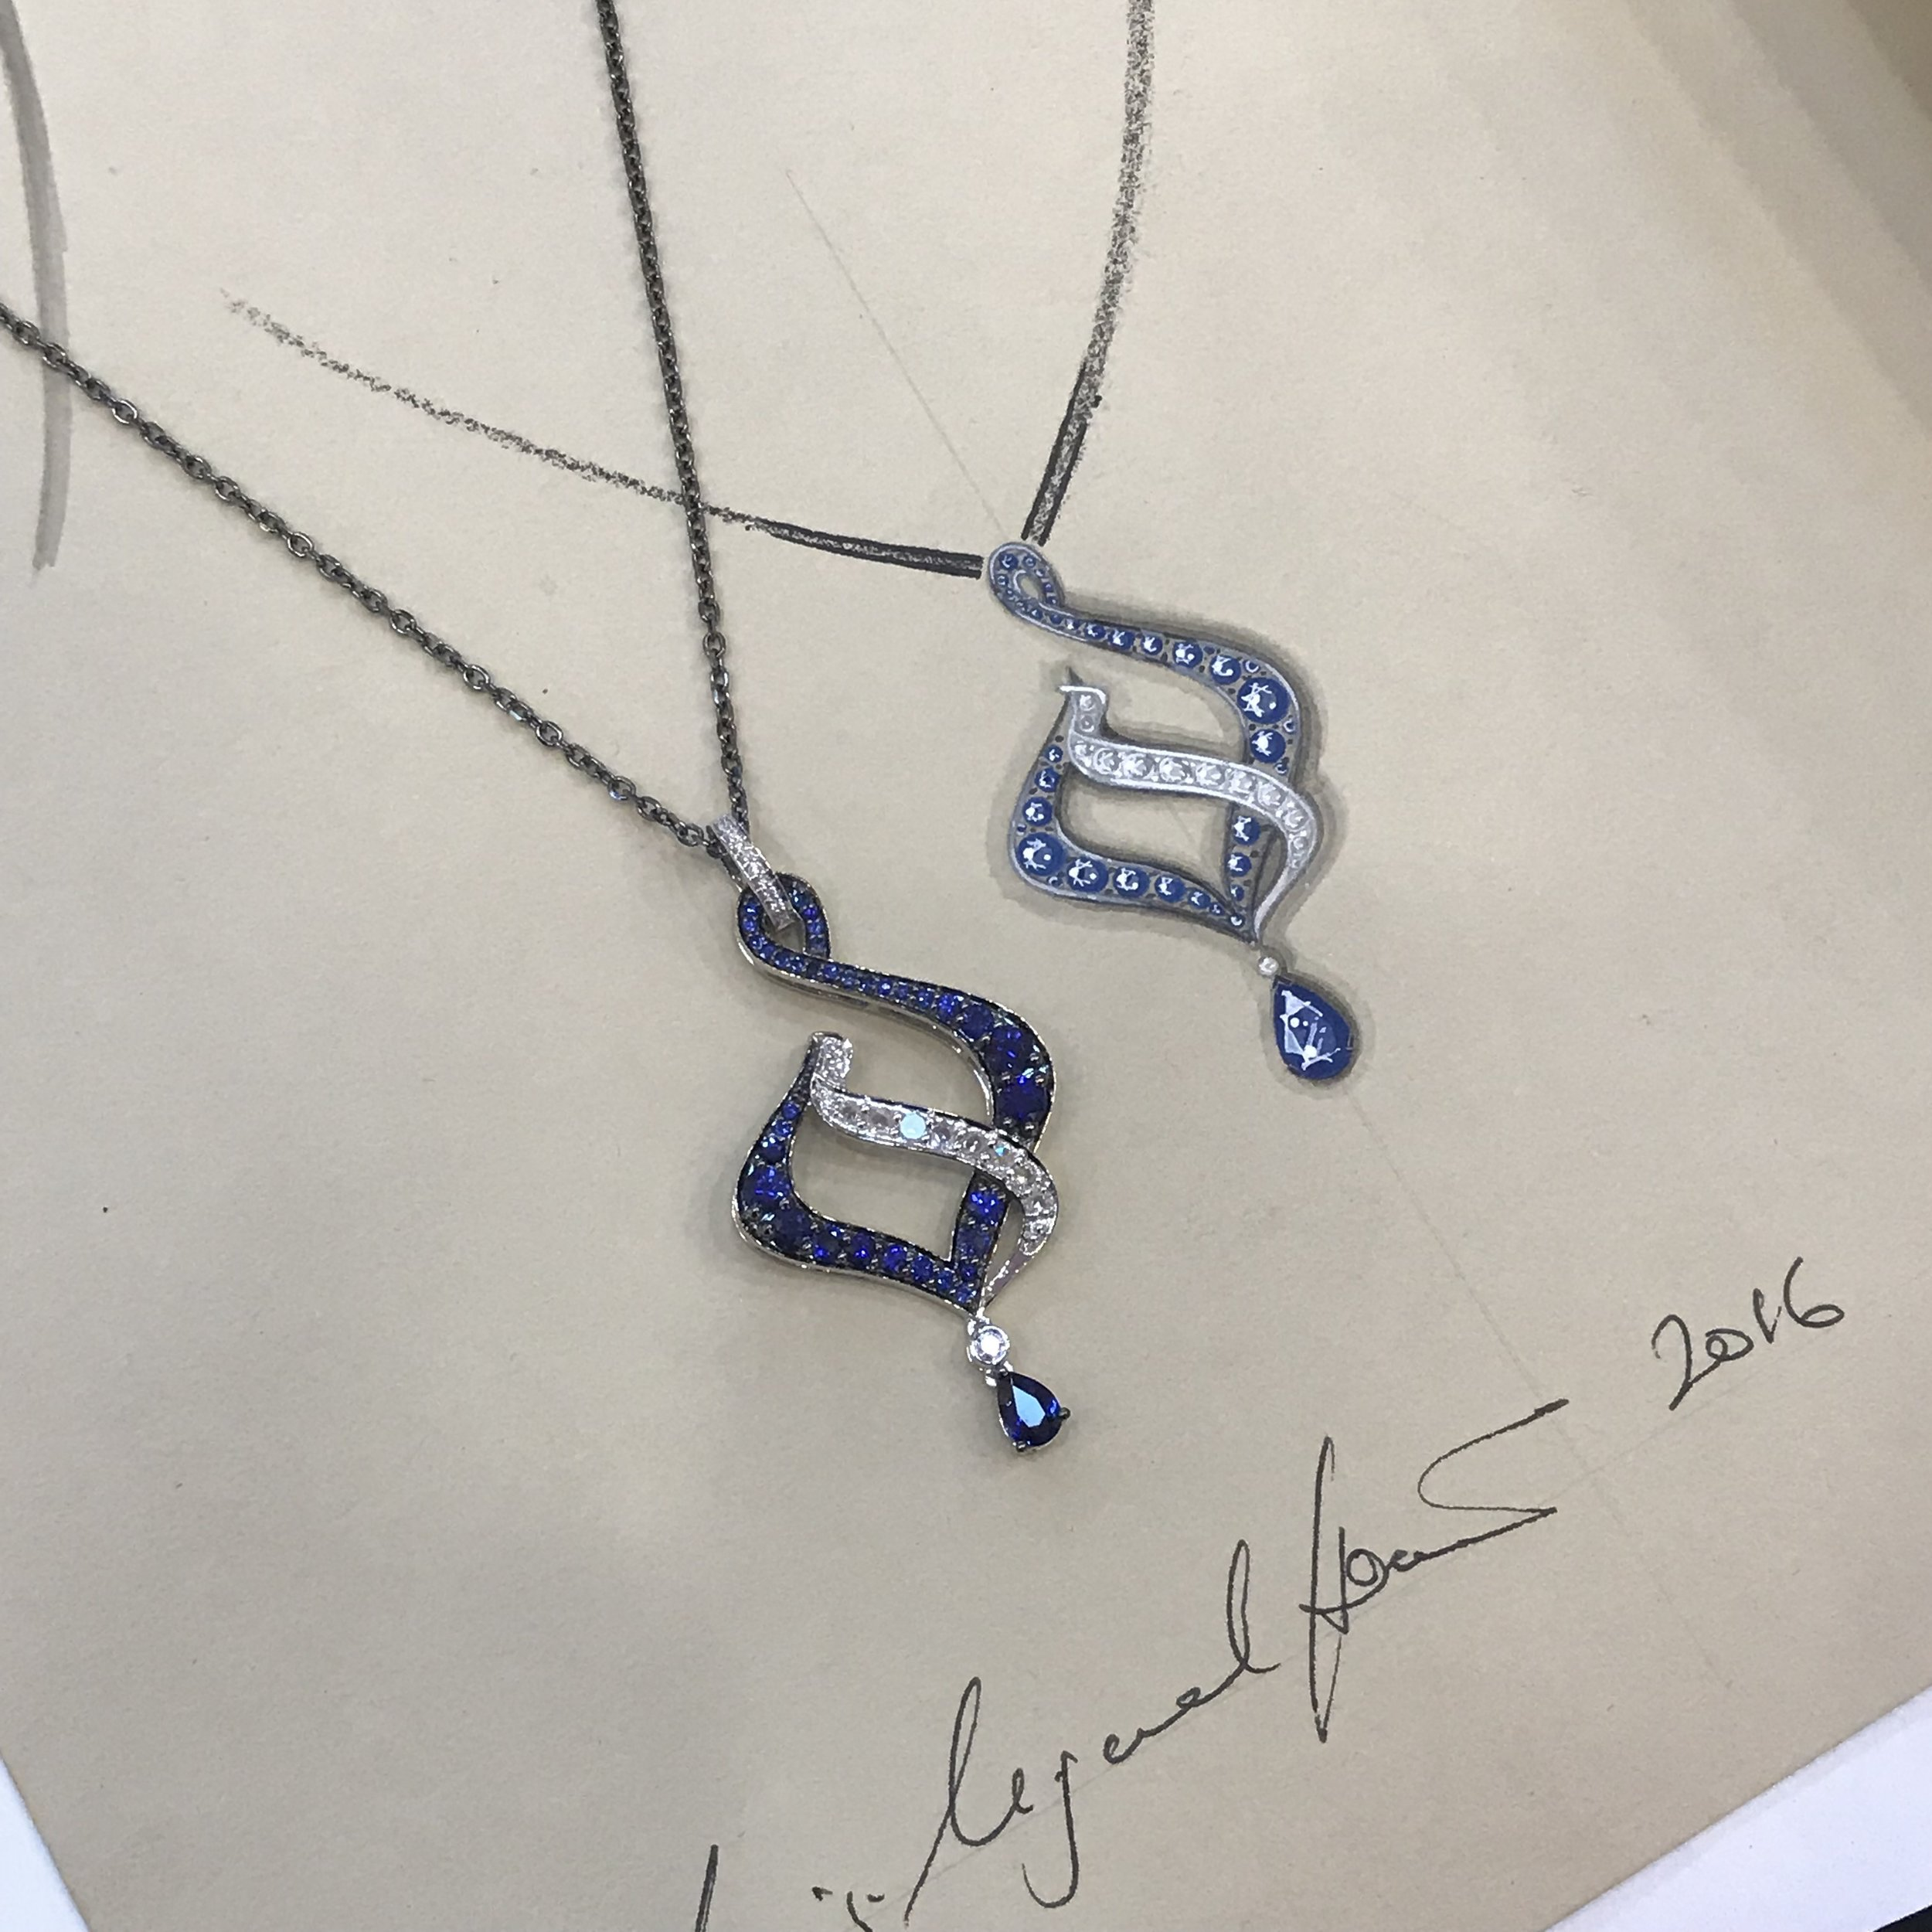 'Blue Flame' pendant; inspired by Art Nouveau architecture and set with sapphires and rose cut diamonds in black gold. Shown next to its original working drawing.